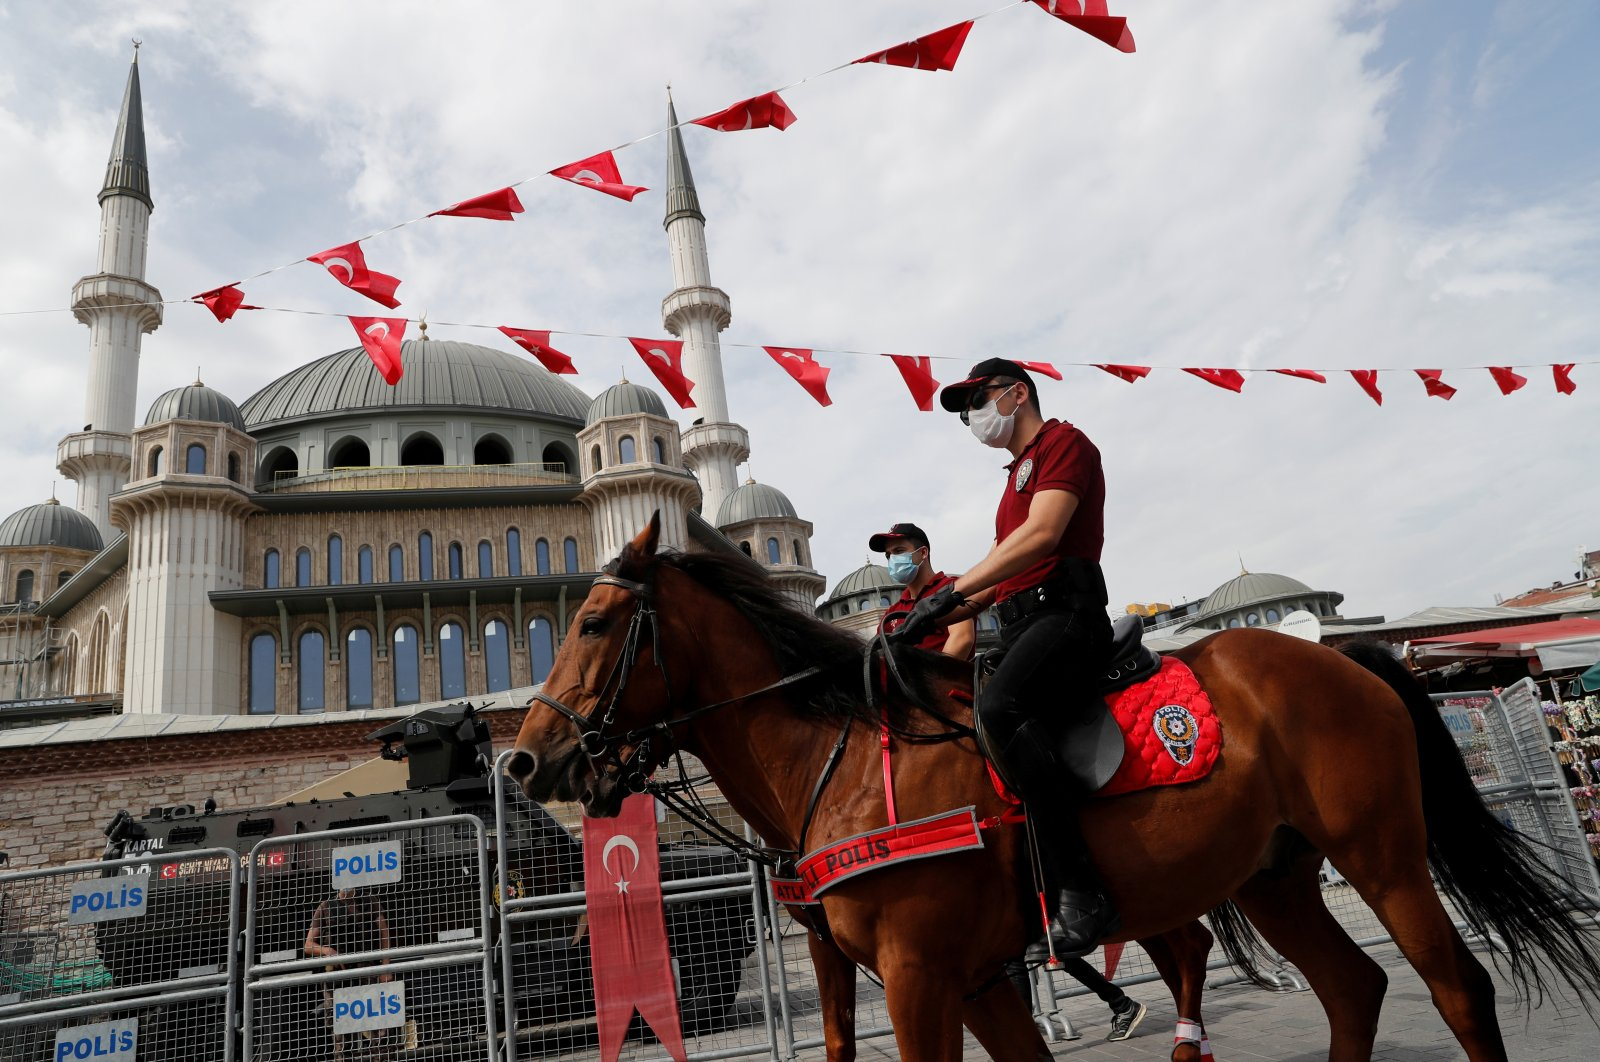 Members of Istanbul Police Department Mounted Unit patrol for people not wearing protective masks at Taksim Square as the spread of the COVID-19 continues, in Istanbul, Turkey, Sept. 26, 2020. (REUTERS Photo)